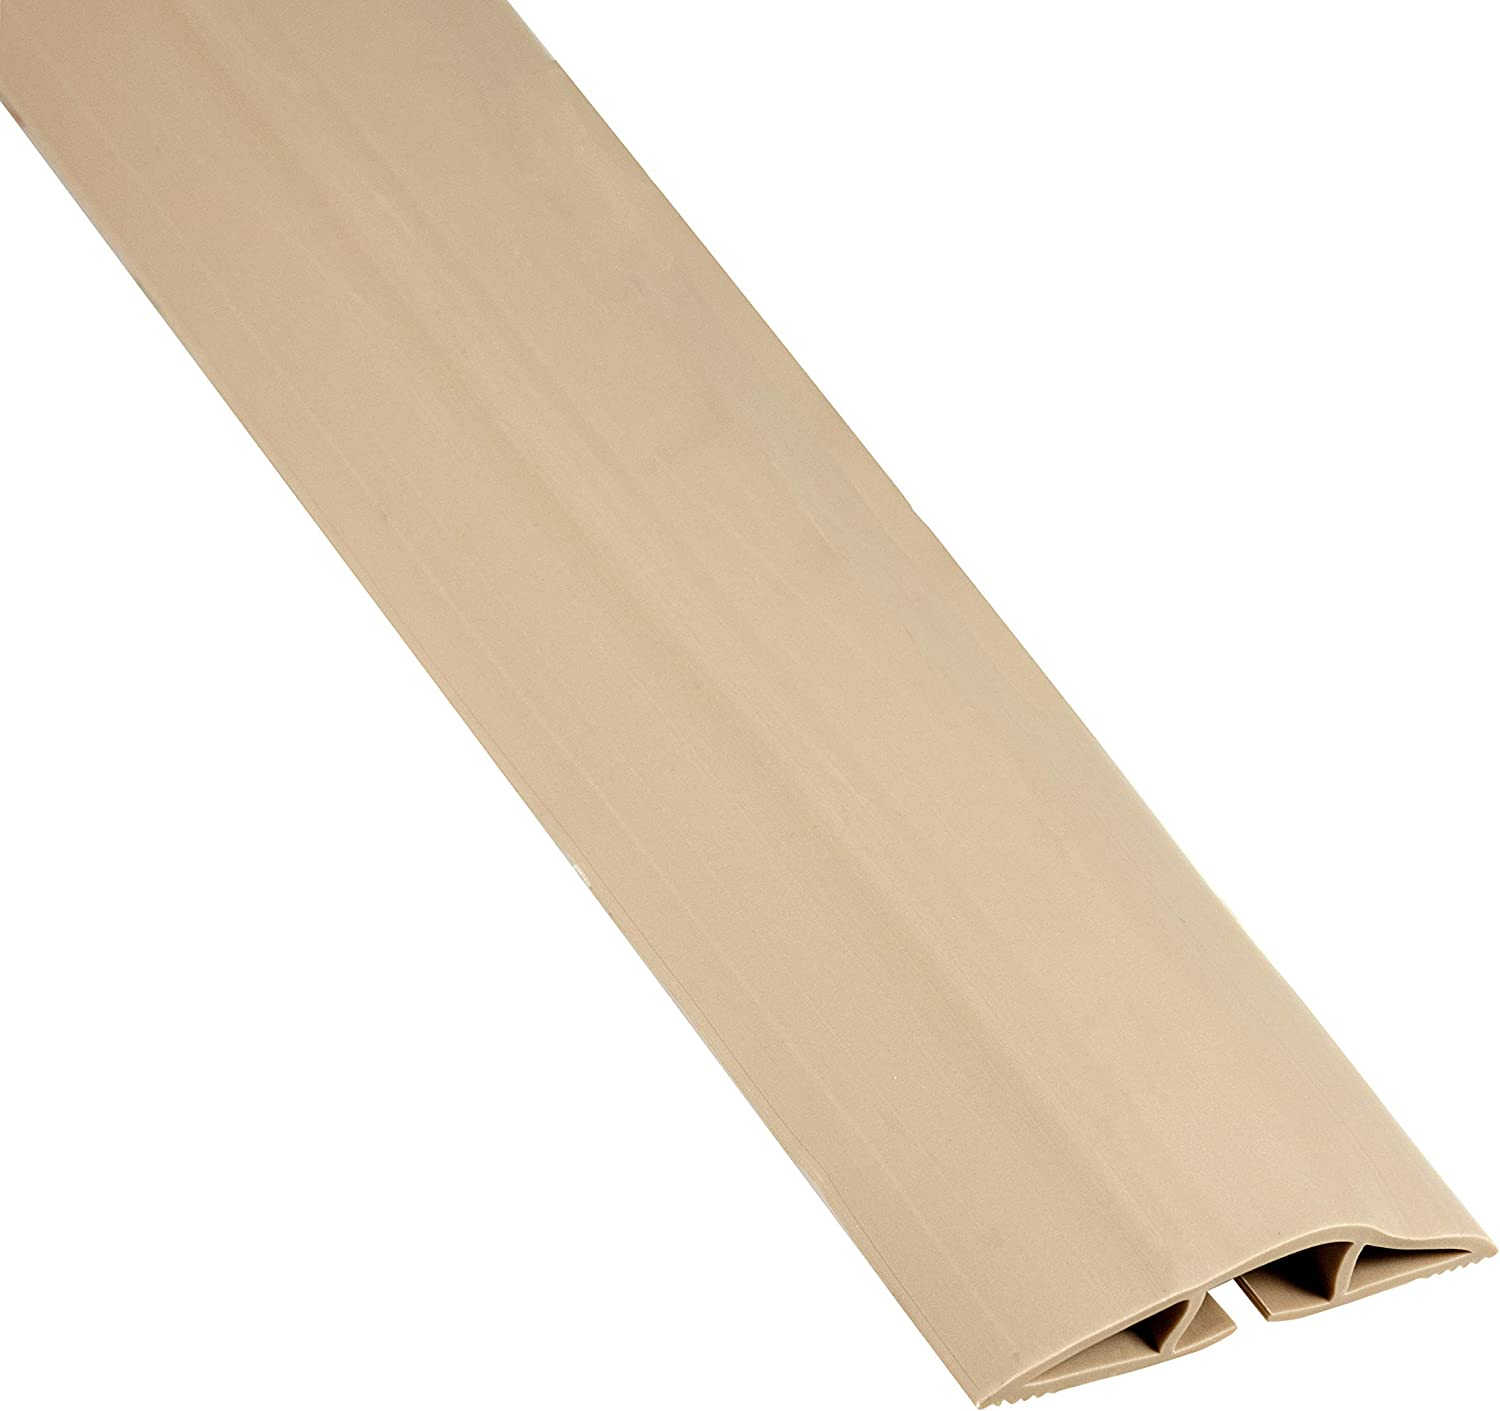 Cordinate, Tan, 6 Ft Floor Cord Cover, Rubber, Low Profile, Cable Protector, 49629, 6 Ft, 6 Ft